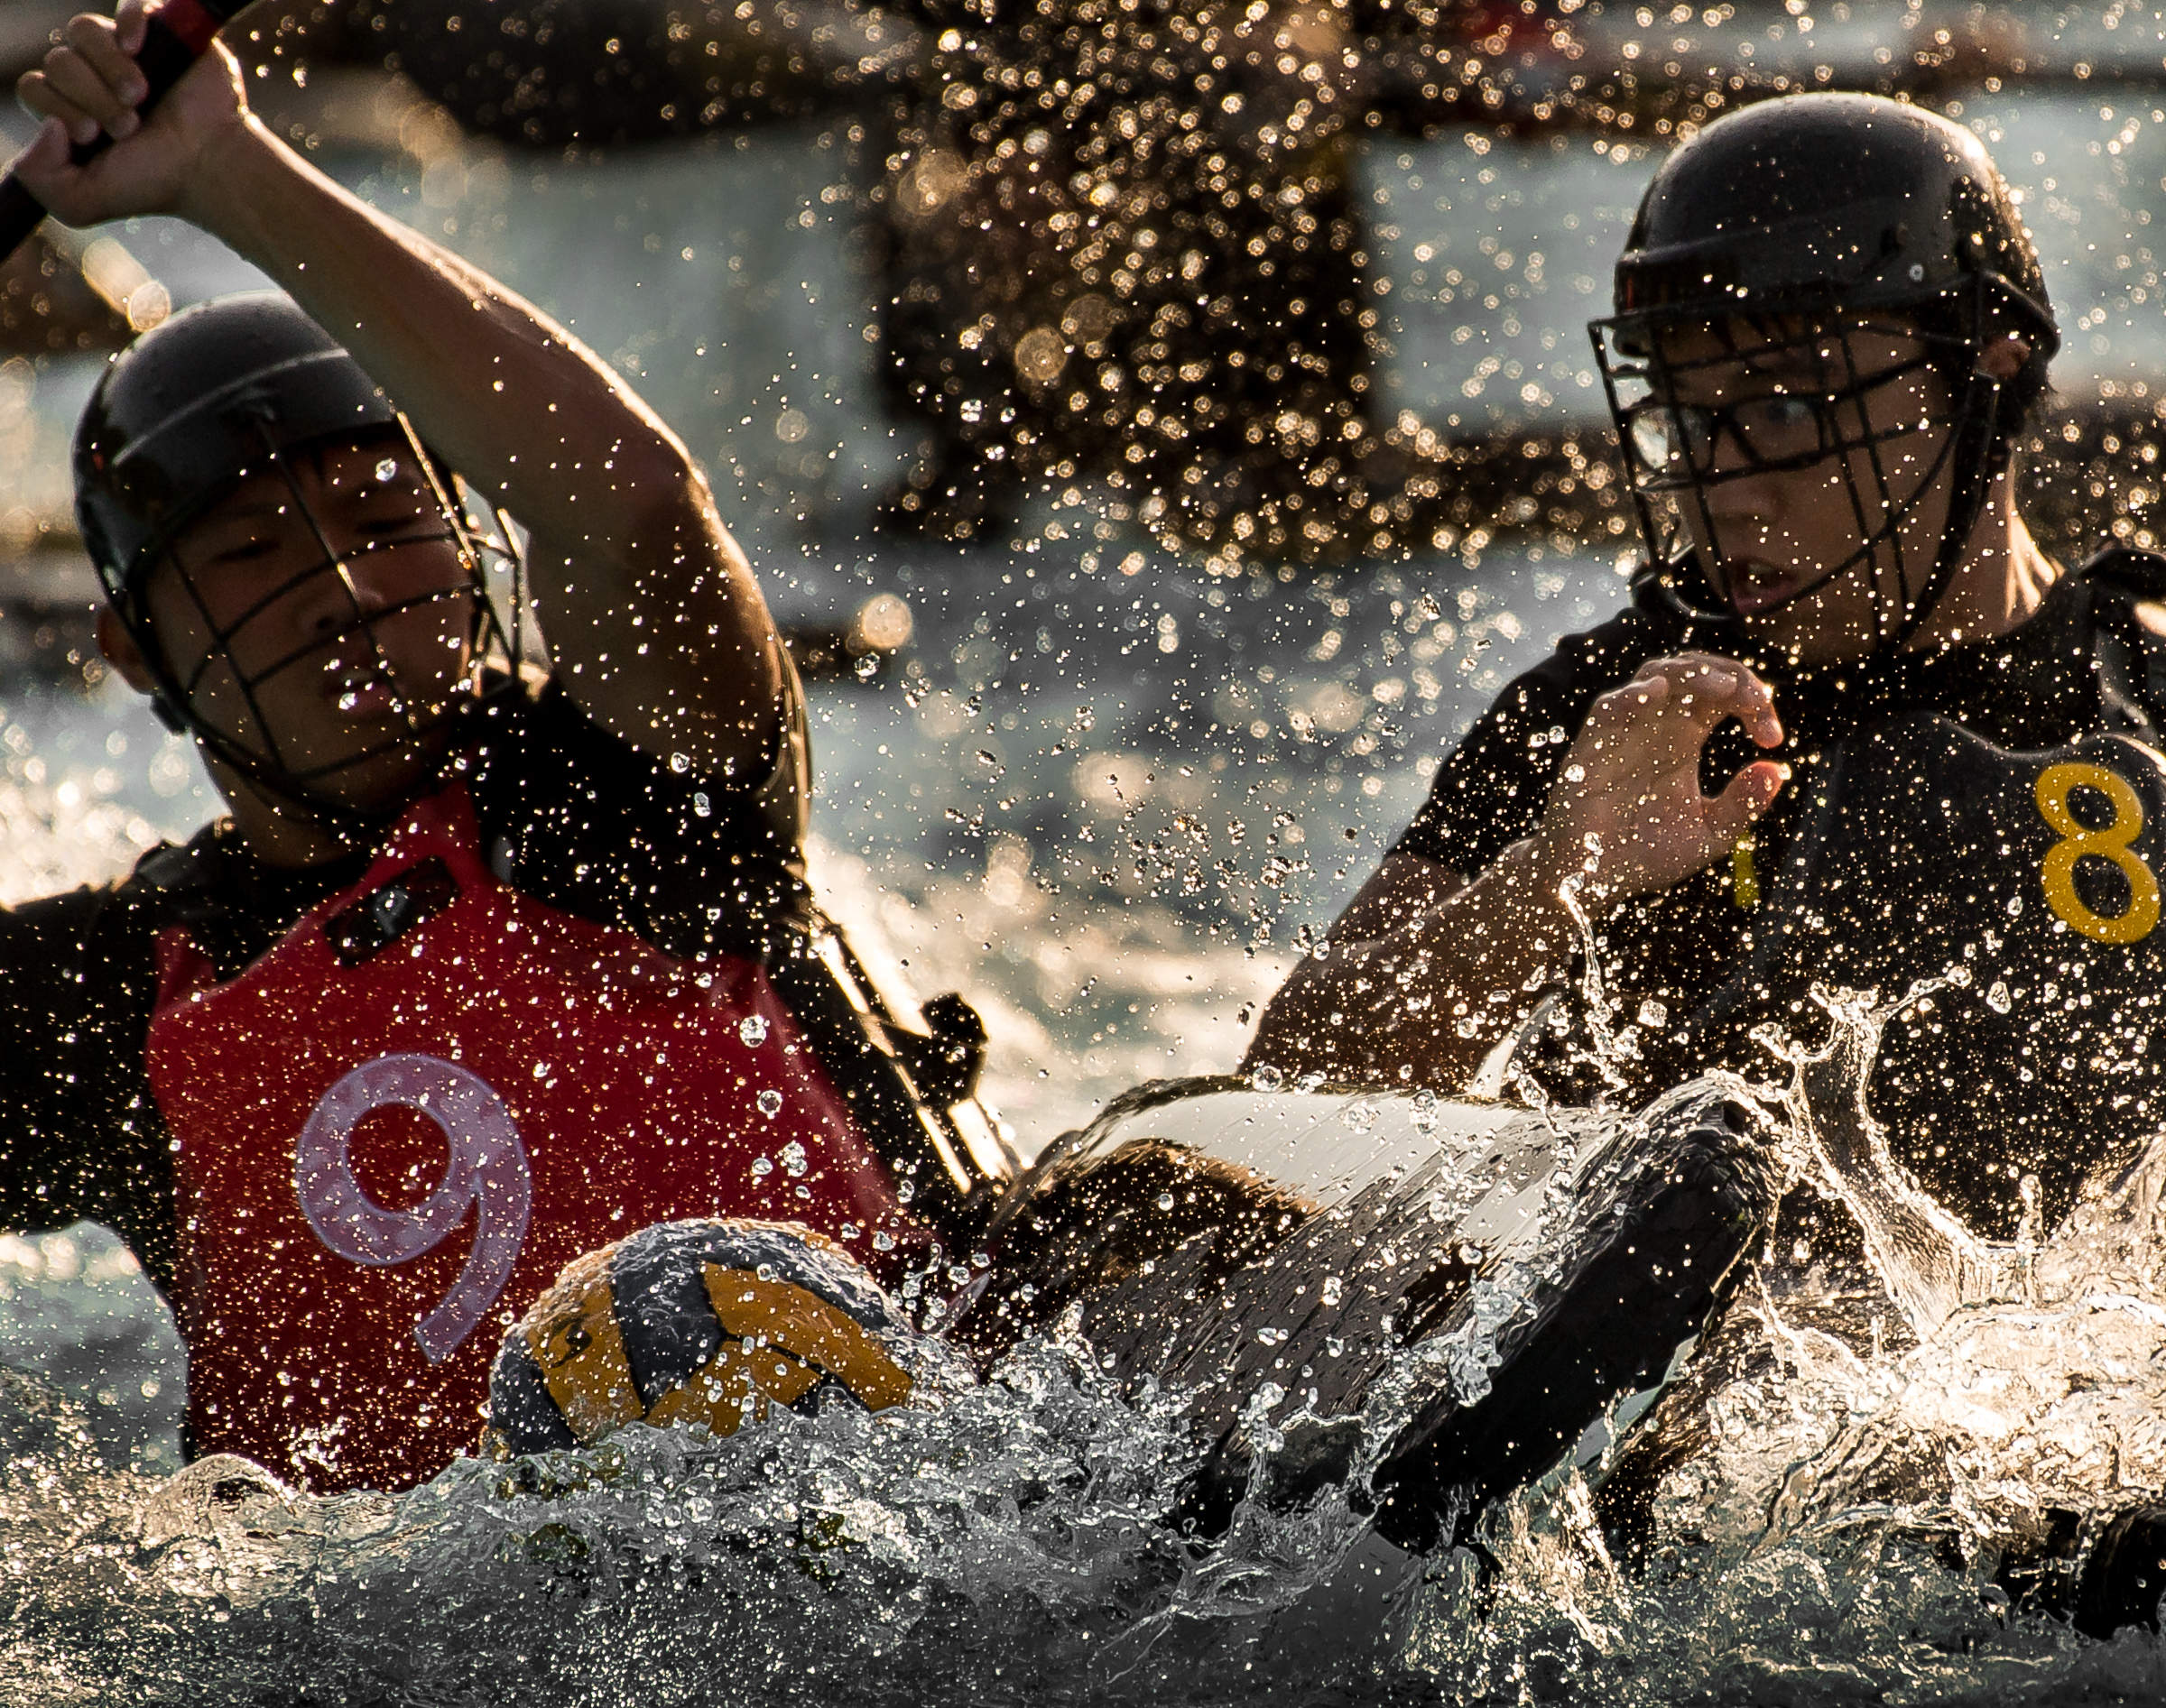 Canoe polo players in action during the Canoe Polo National Championships at Orchid Country Club.